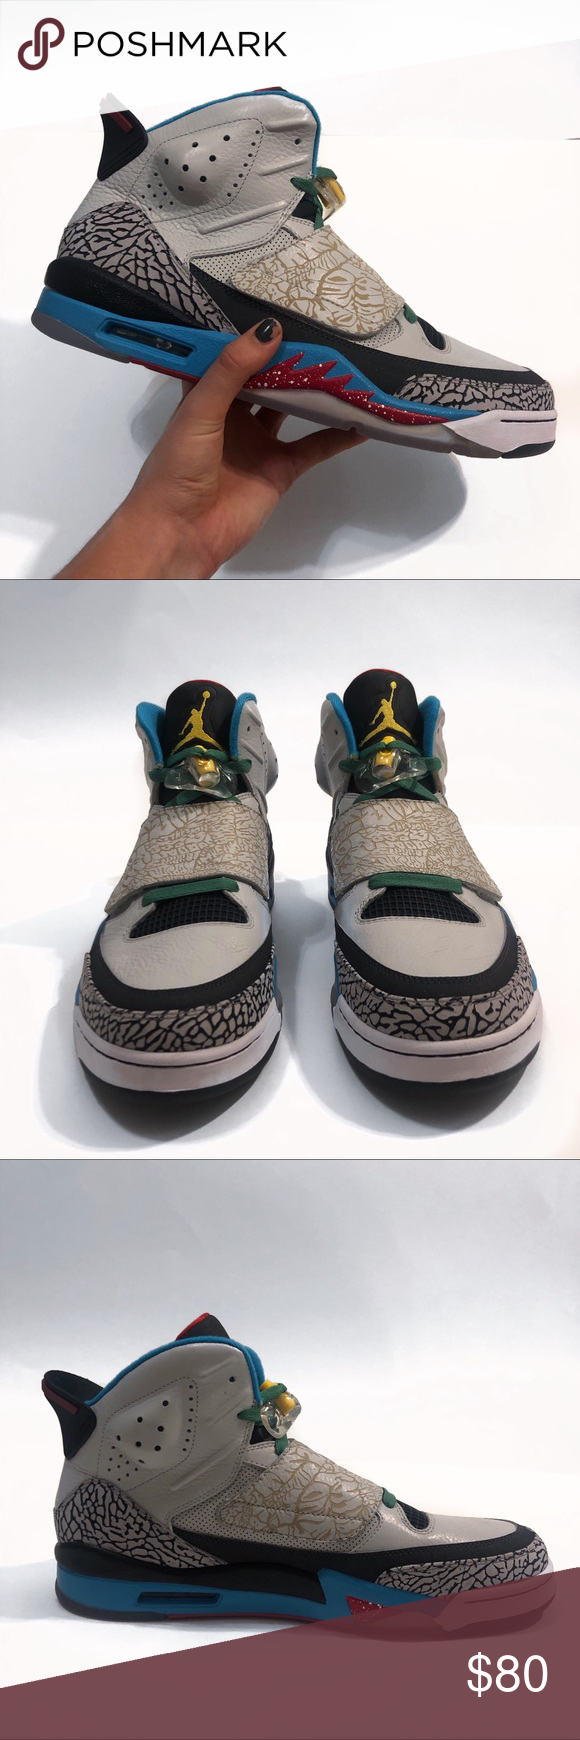 """separation shoes b12c3 dfefb Nike Air Jordan Son Of Mars shoes Brand new Nike Air Jordan Son Of Mars  shoes in """"pop art"""" coloring. Perfect condition. Never worn, only taken out  of the ..."""